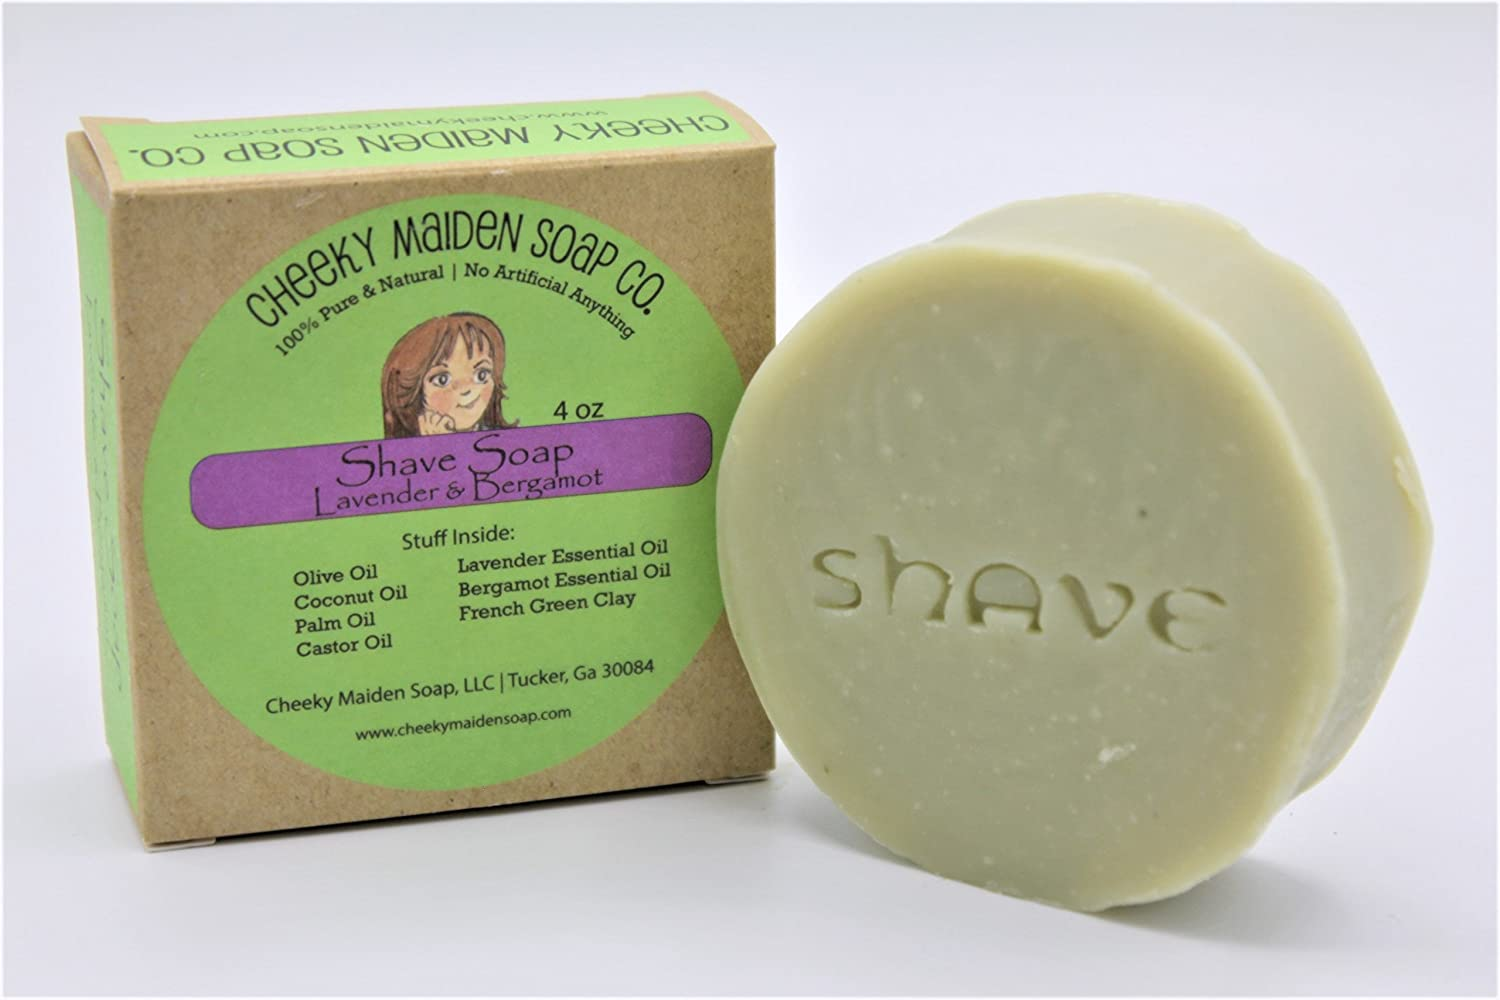 Cheeky Maiden Shave Soap 100% Natural Handmade with Saponified Oils of Olive, Coconut, Sustainable Palm, Castor Oil, French Green Clay, Bergamot, Lavender Essential Oil 4.5 oz Made in USA Cheeky Maiden Soap Co.